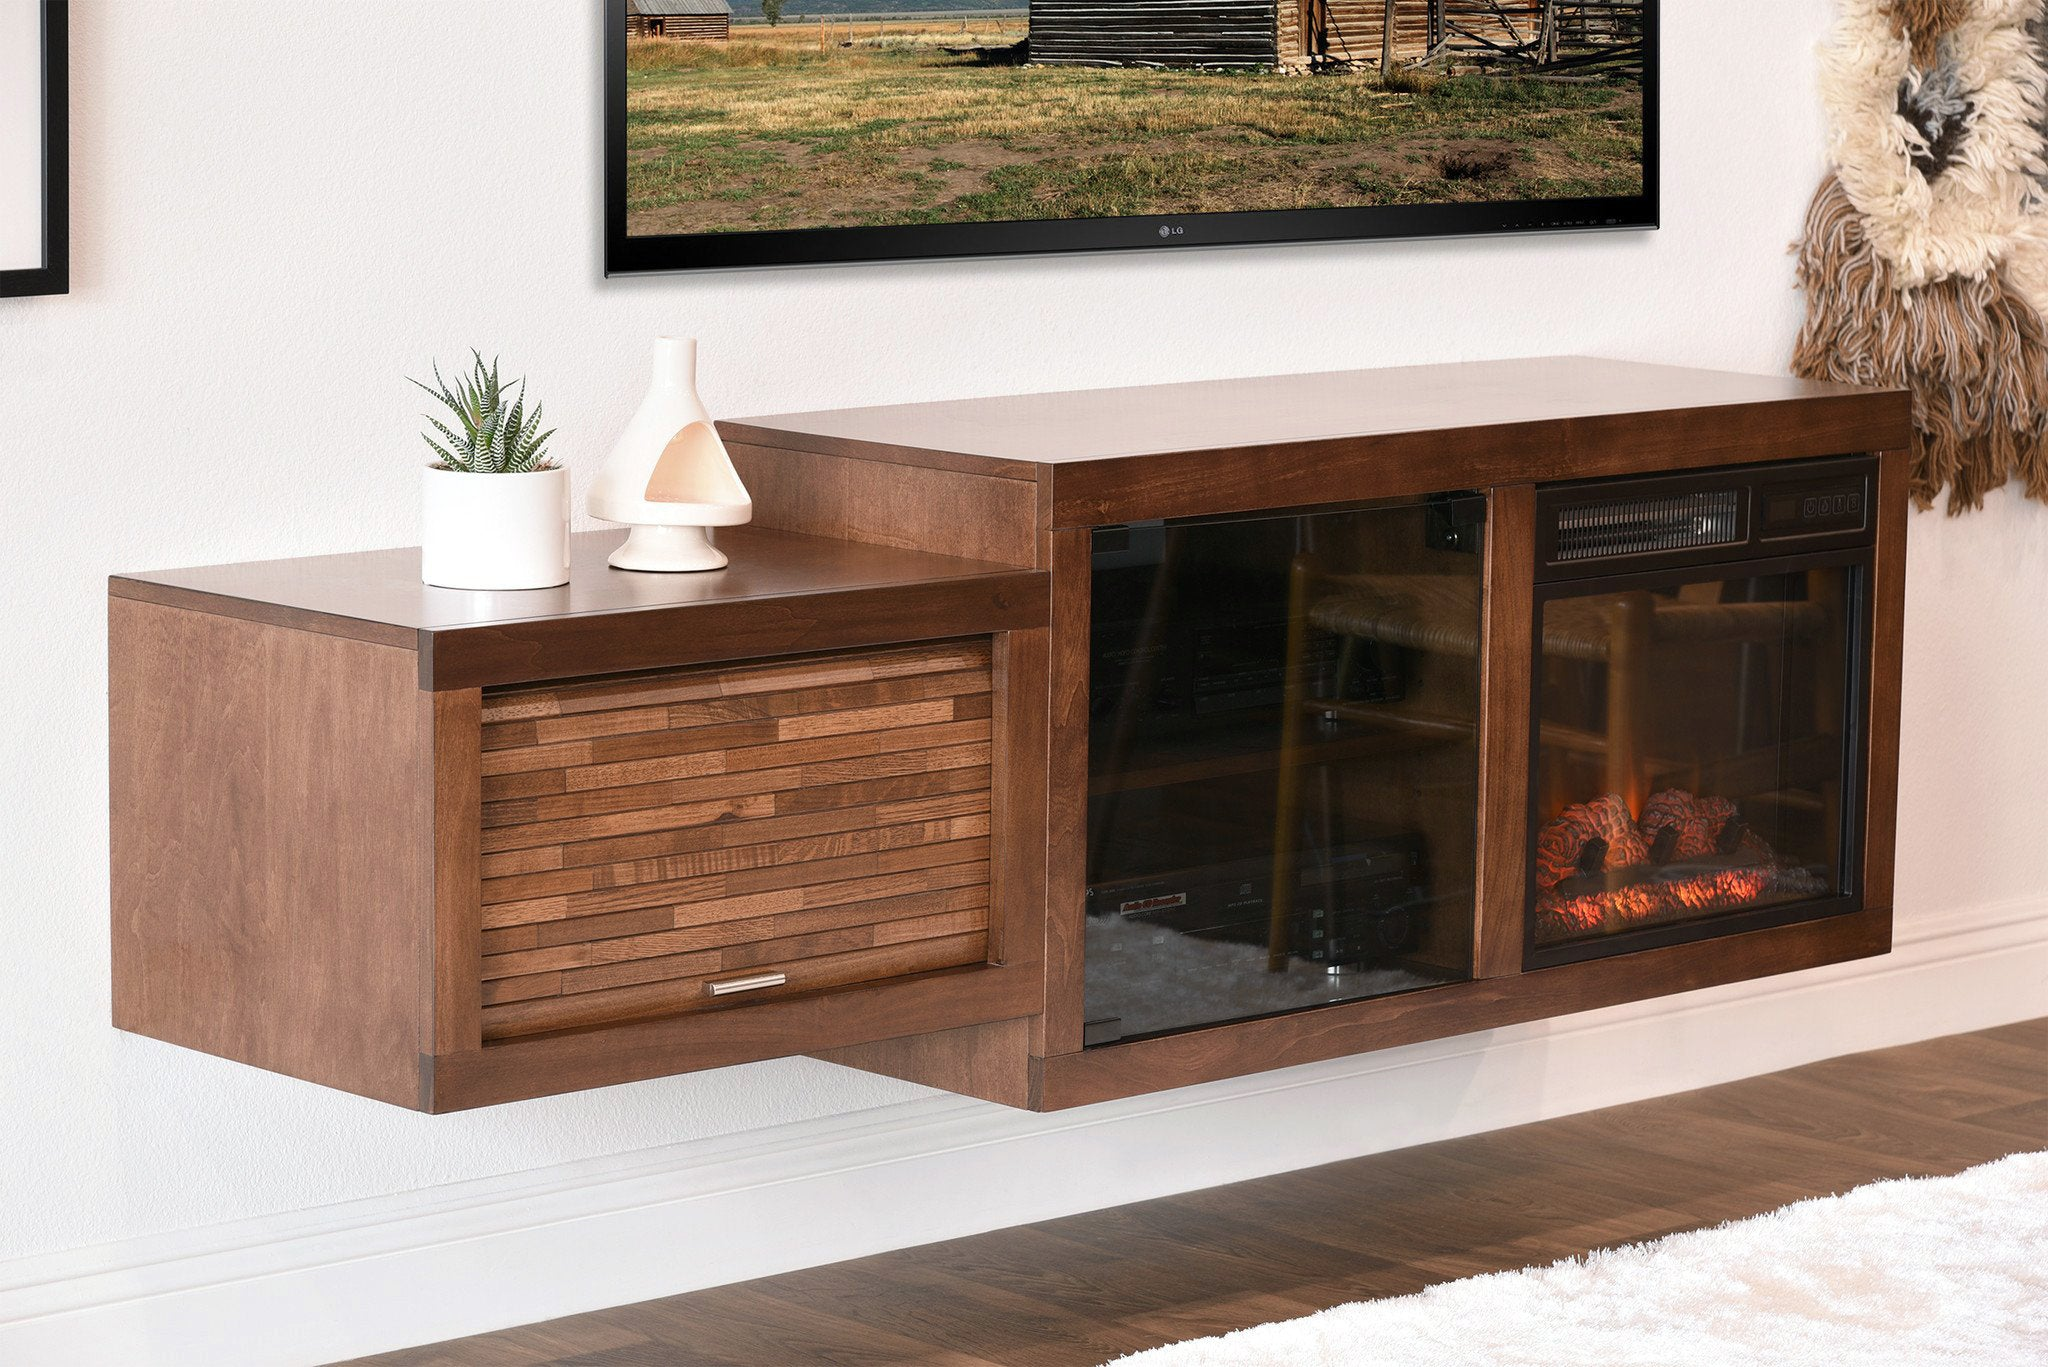 stand perfect rainy small season of reisa with for cabinet home fireplace tv by image decor